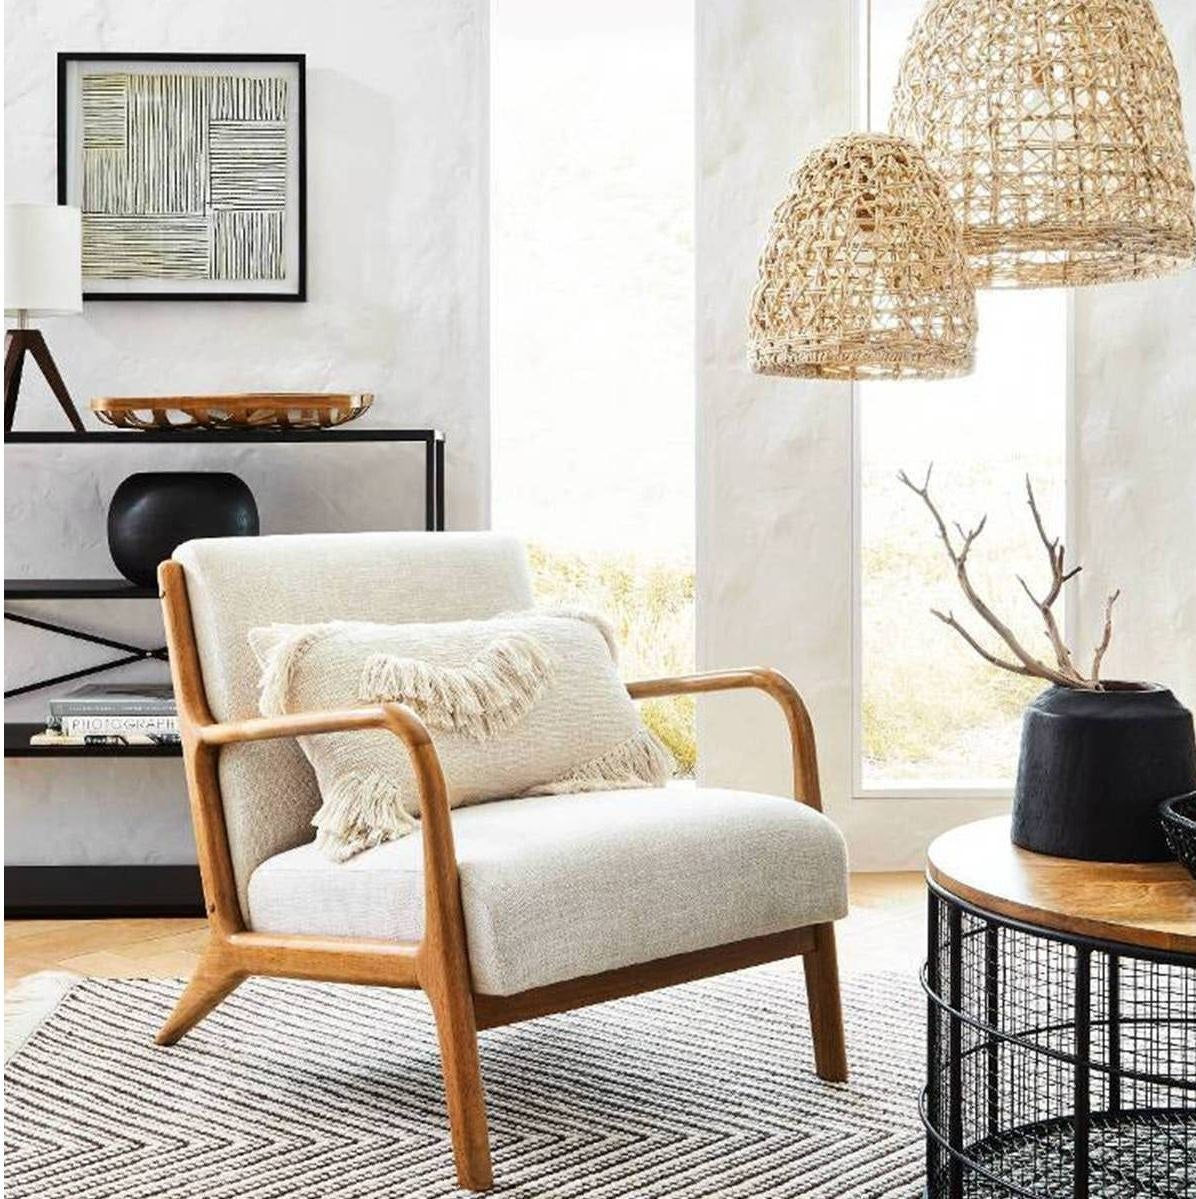 cream colored armchair with wood frame in a living room